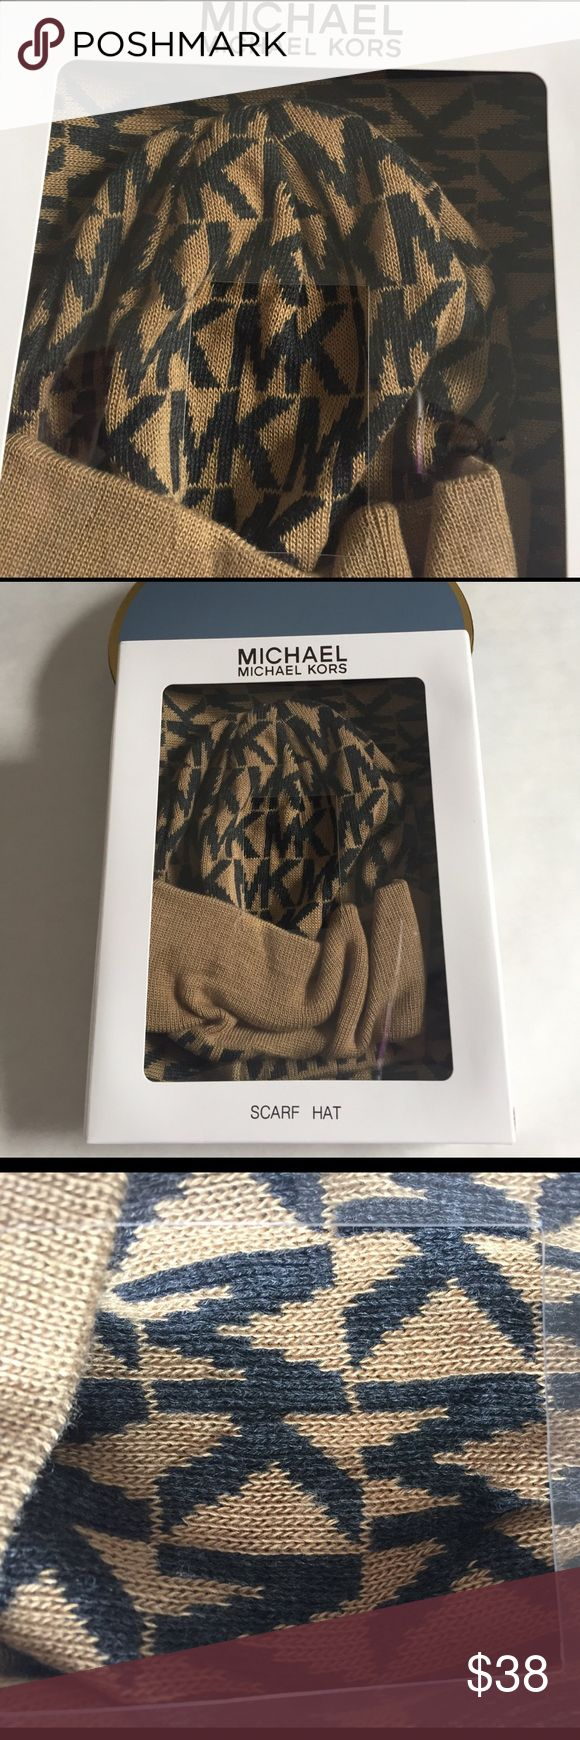 🎉MK scarf & hat Set Michael Kors light brown and camel monogram set of hat and scarf. Brand new in gift box. Still sealed. Michael Kors Accessories Scarves & Wraps